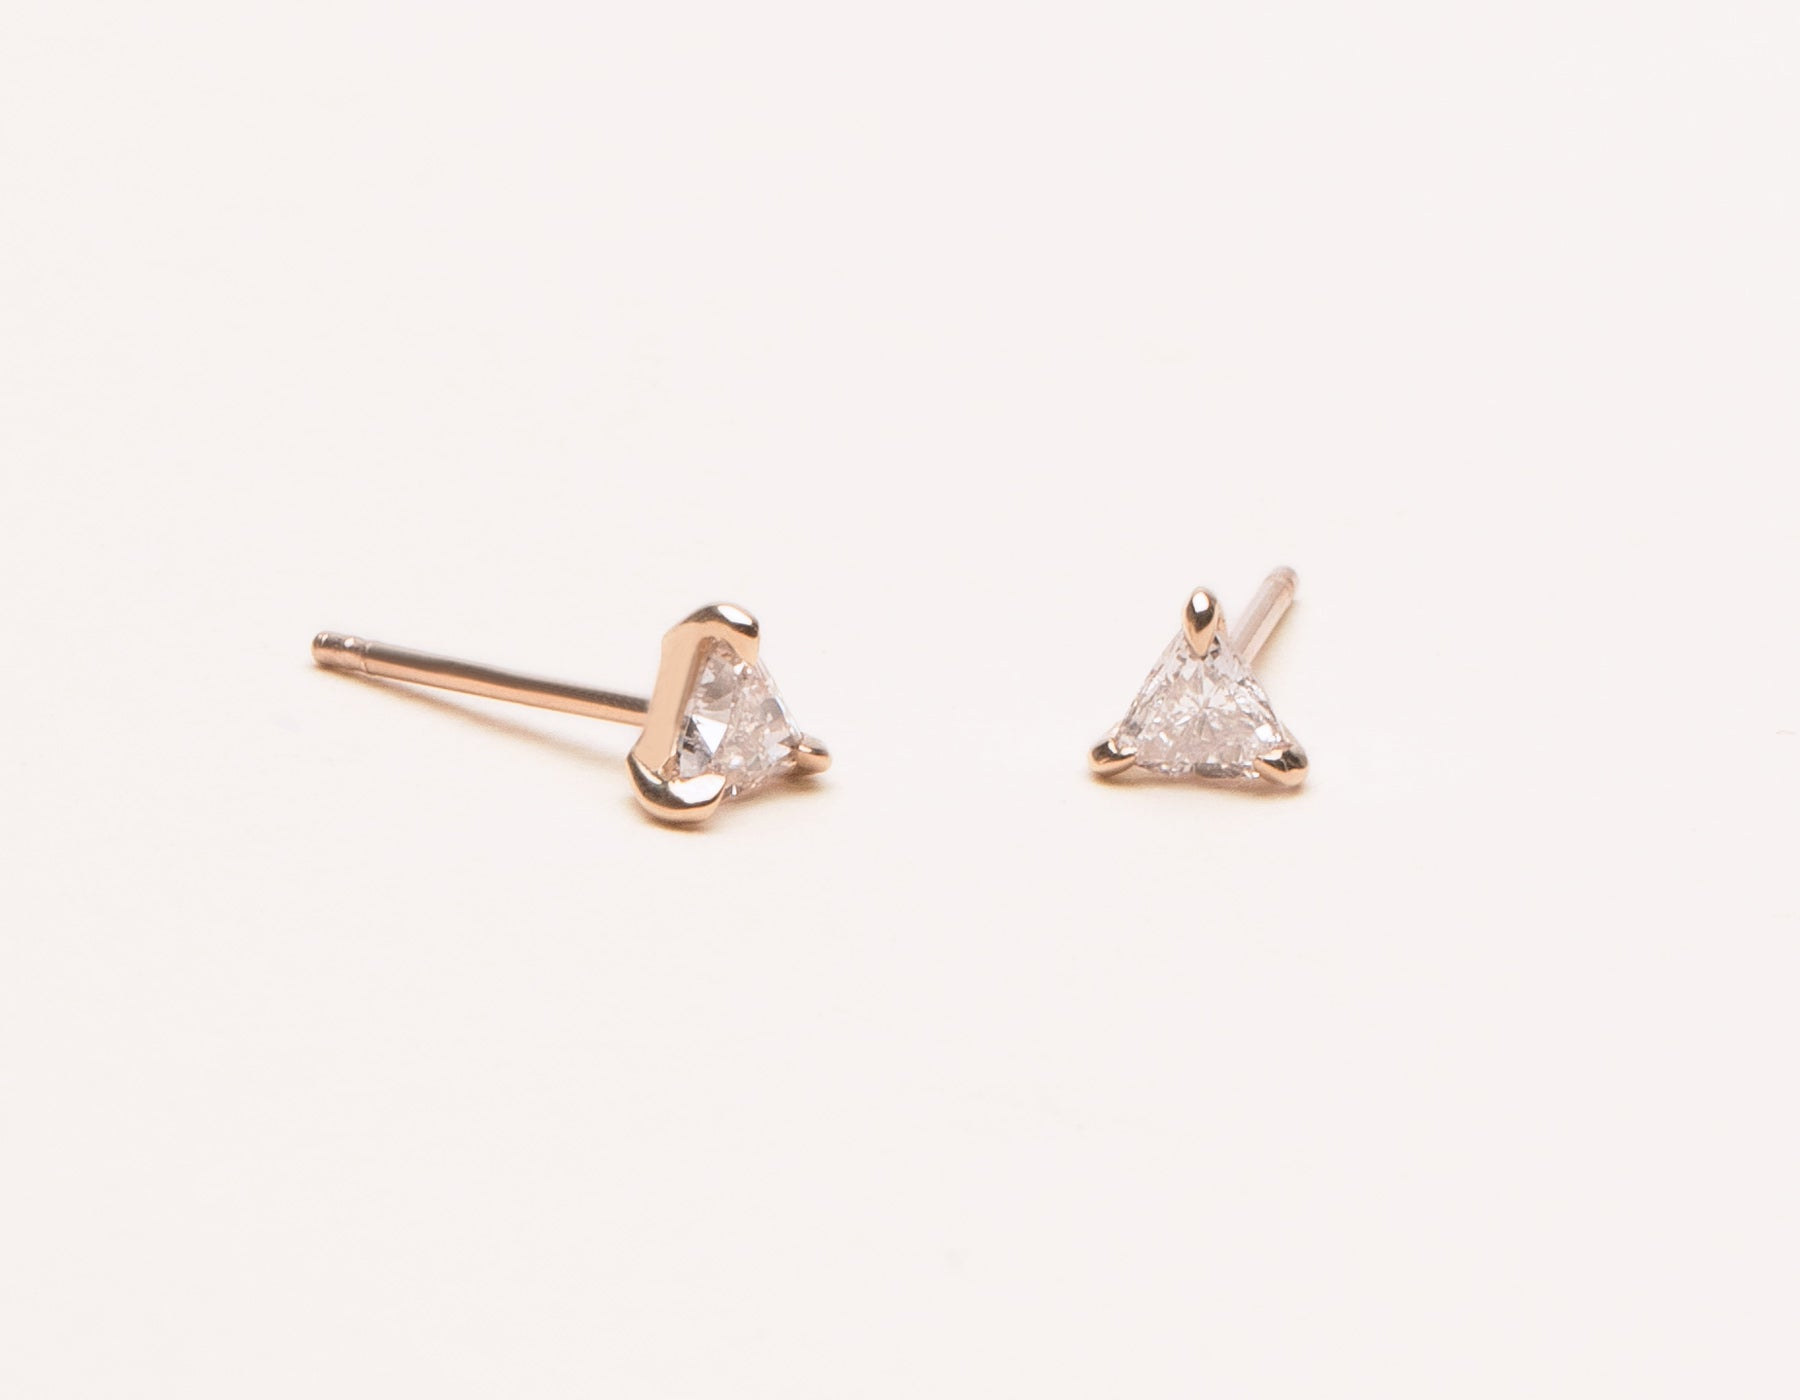 bar handmade rbvahfboo stainless gold earring simple earrings steel studs delicate square rose product stud minimalist staple